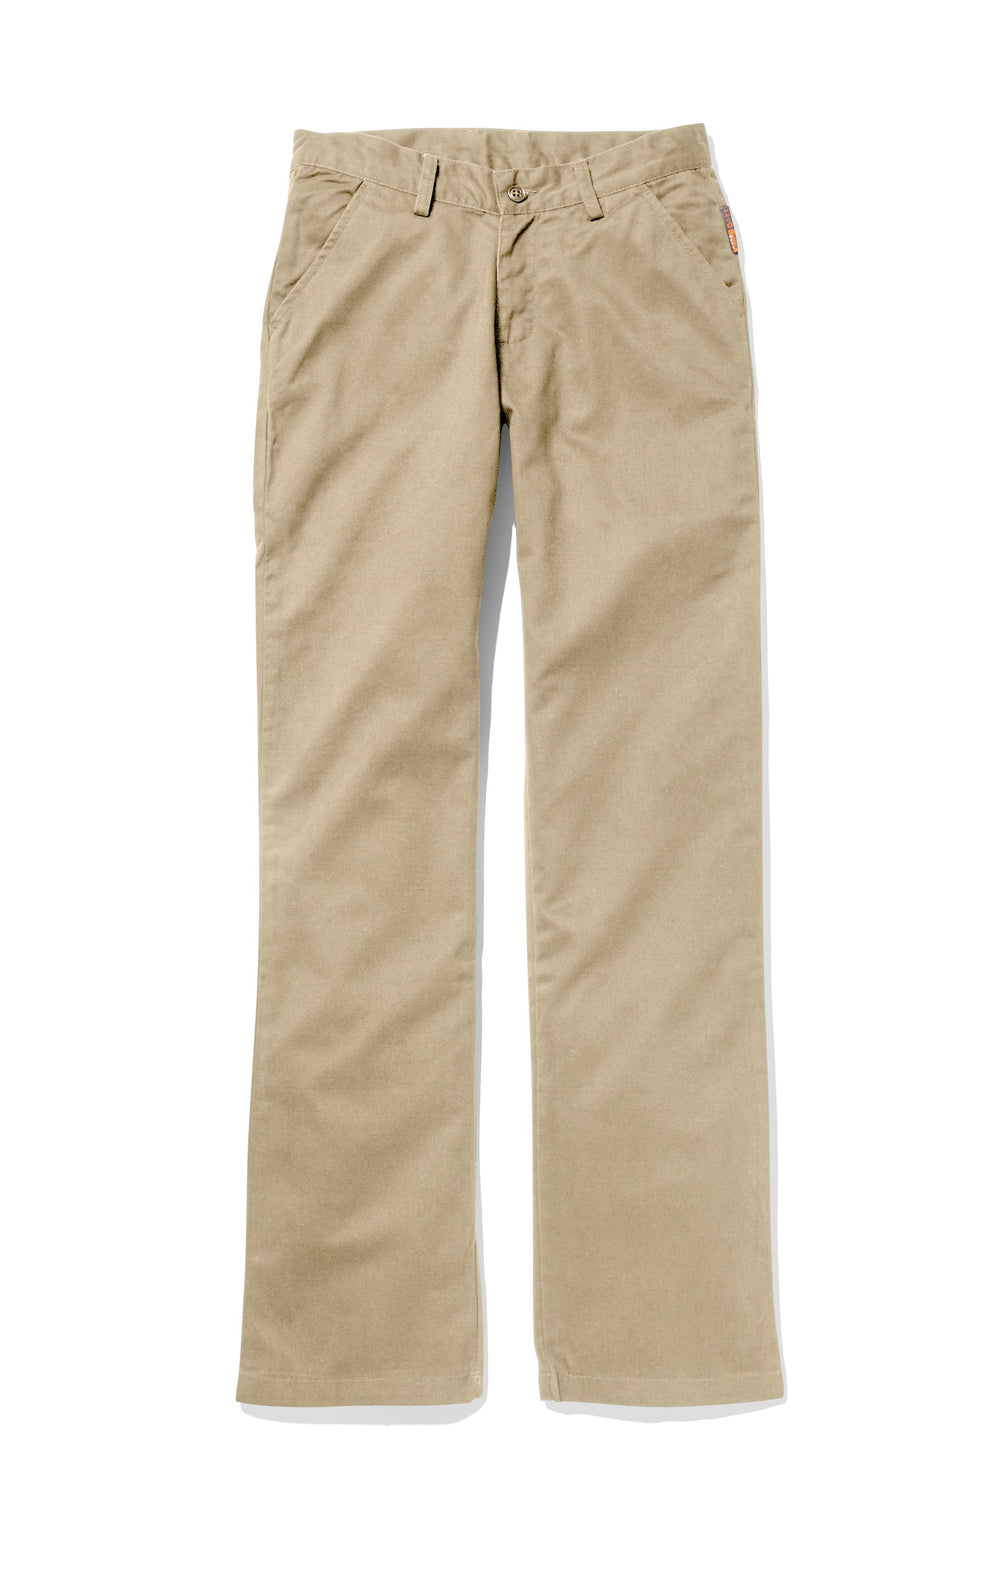 Women's Khaki FR Uniform Pant